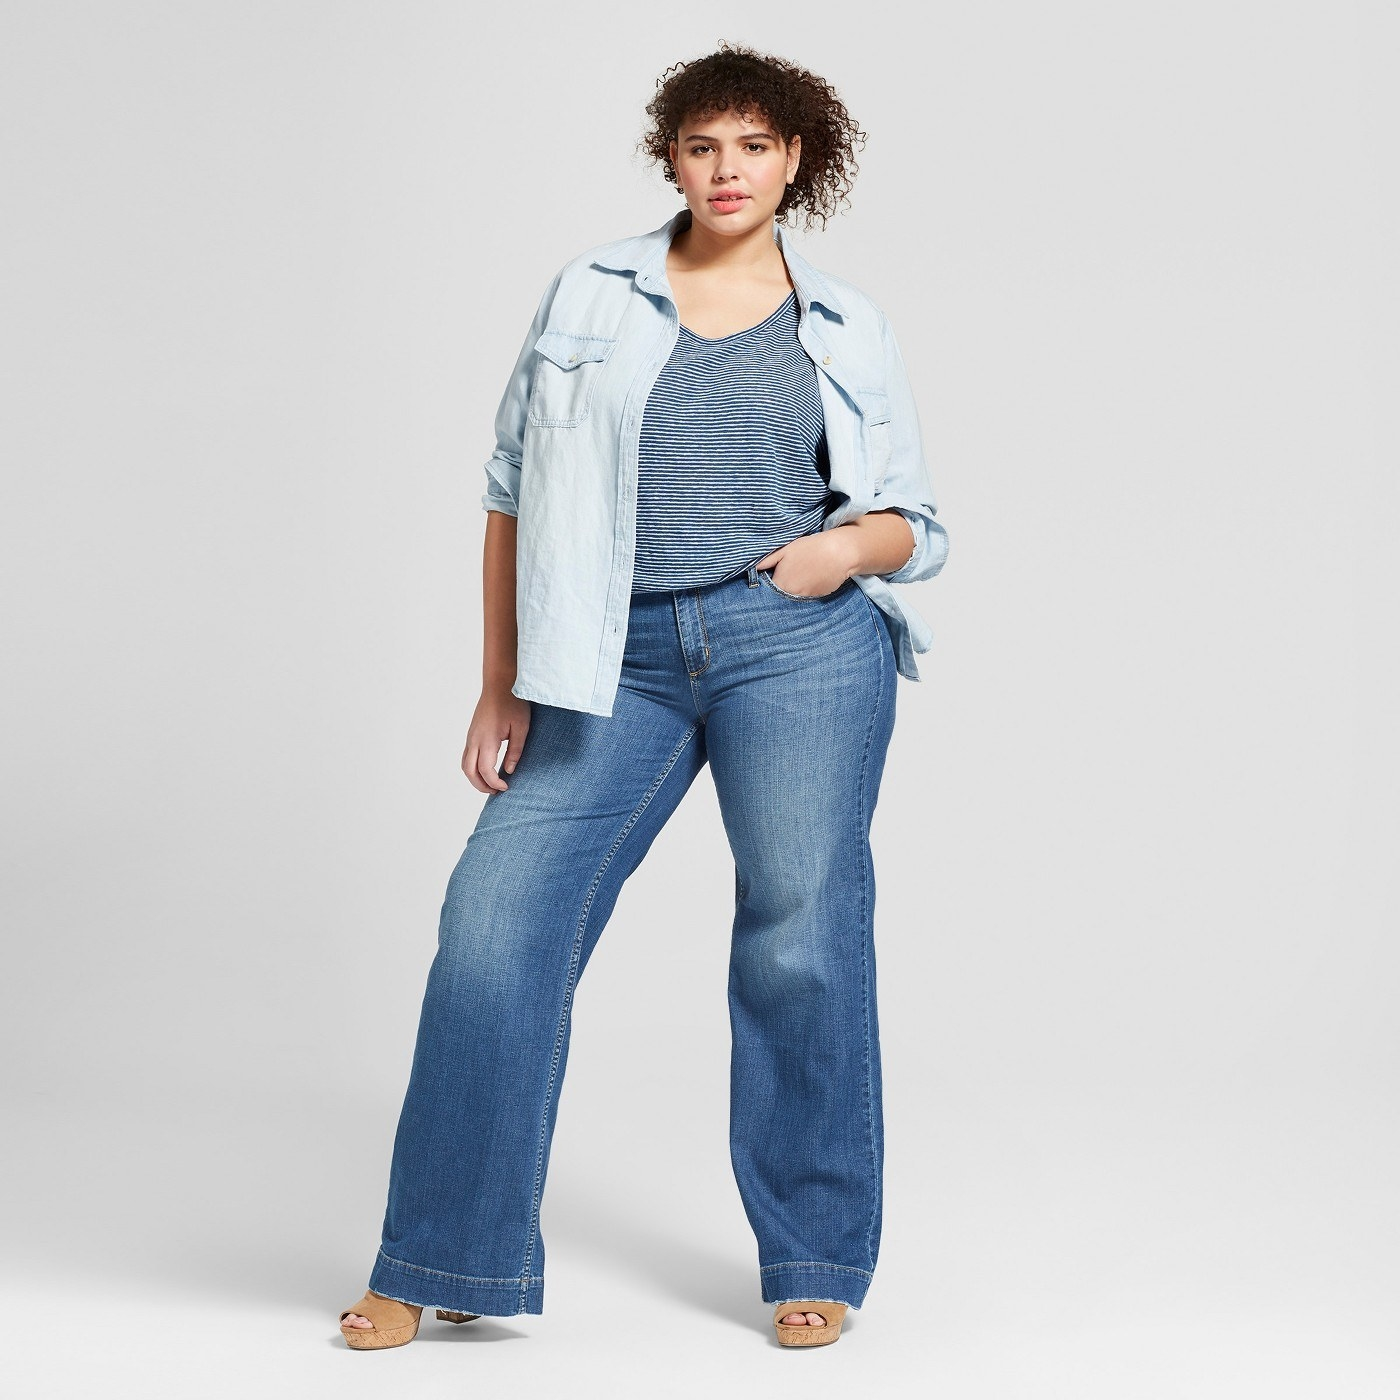 b43247de03e 15 Of The Best Places To Buy Plus-Size Jeans